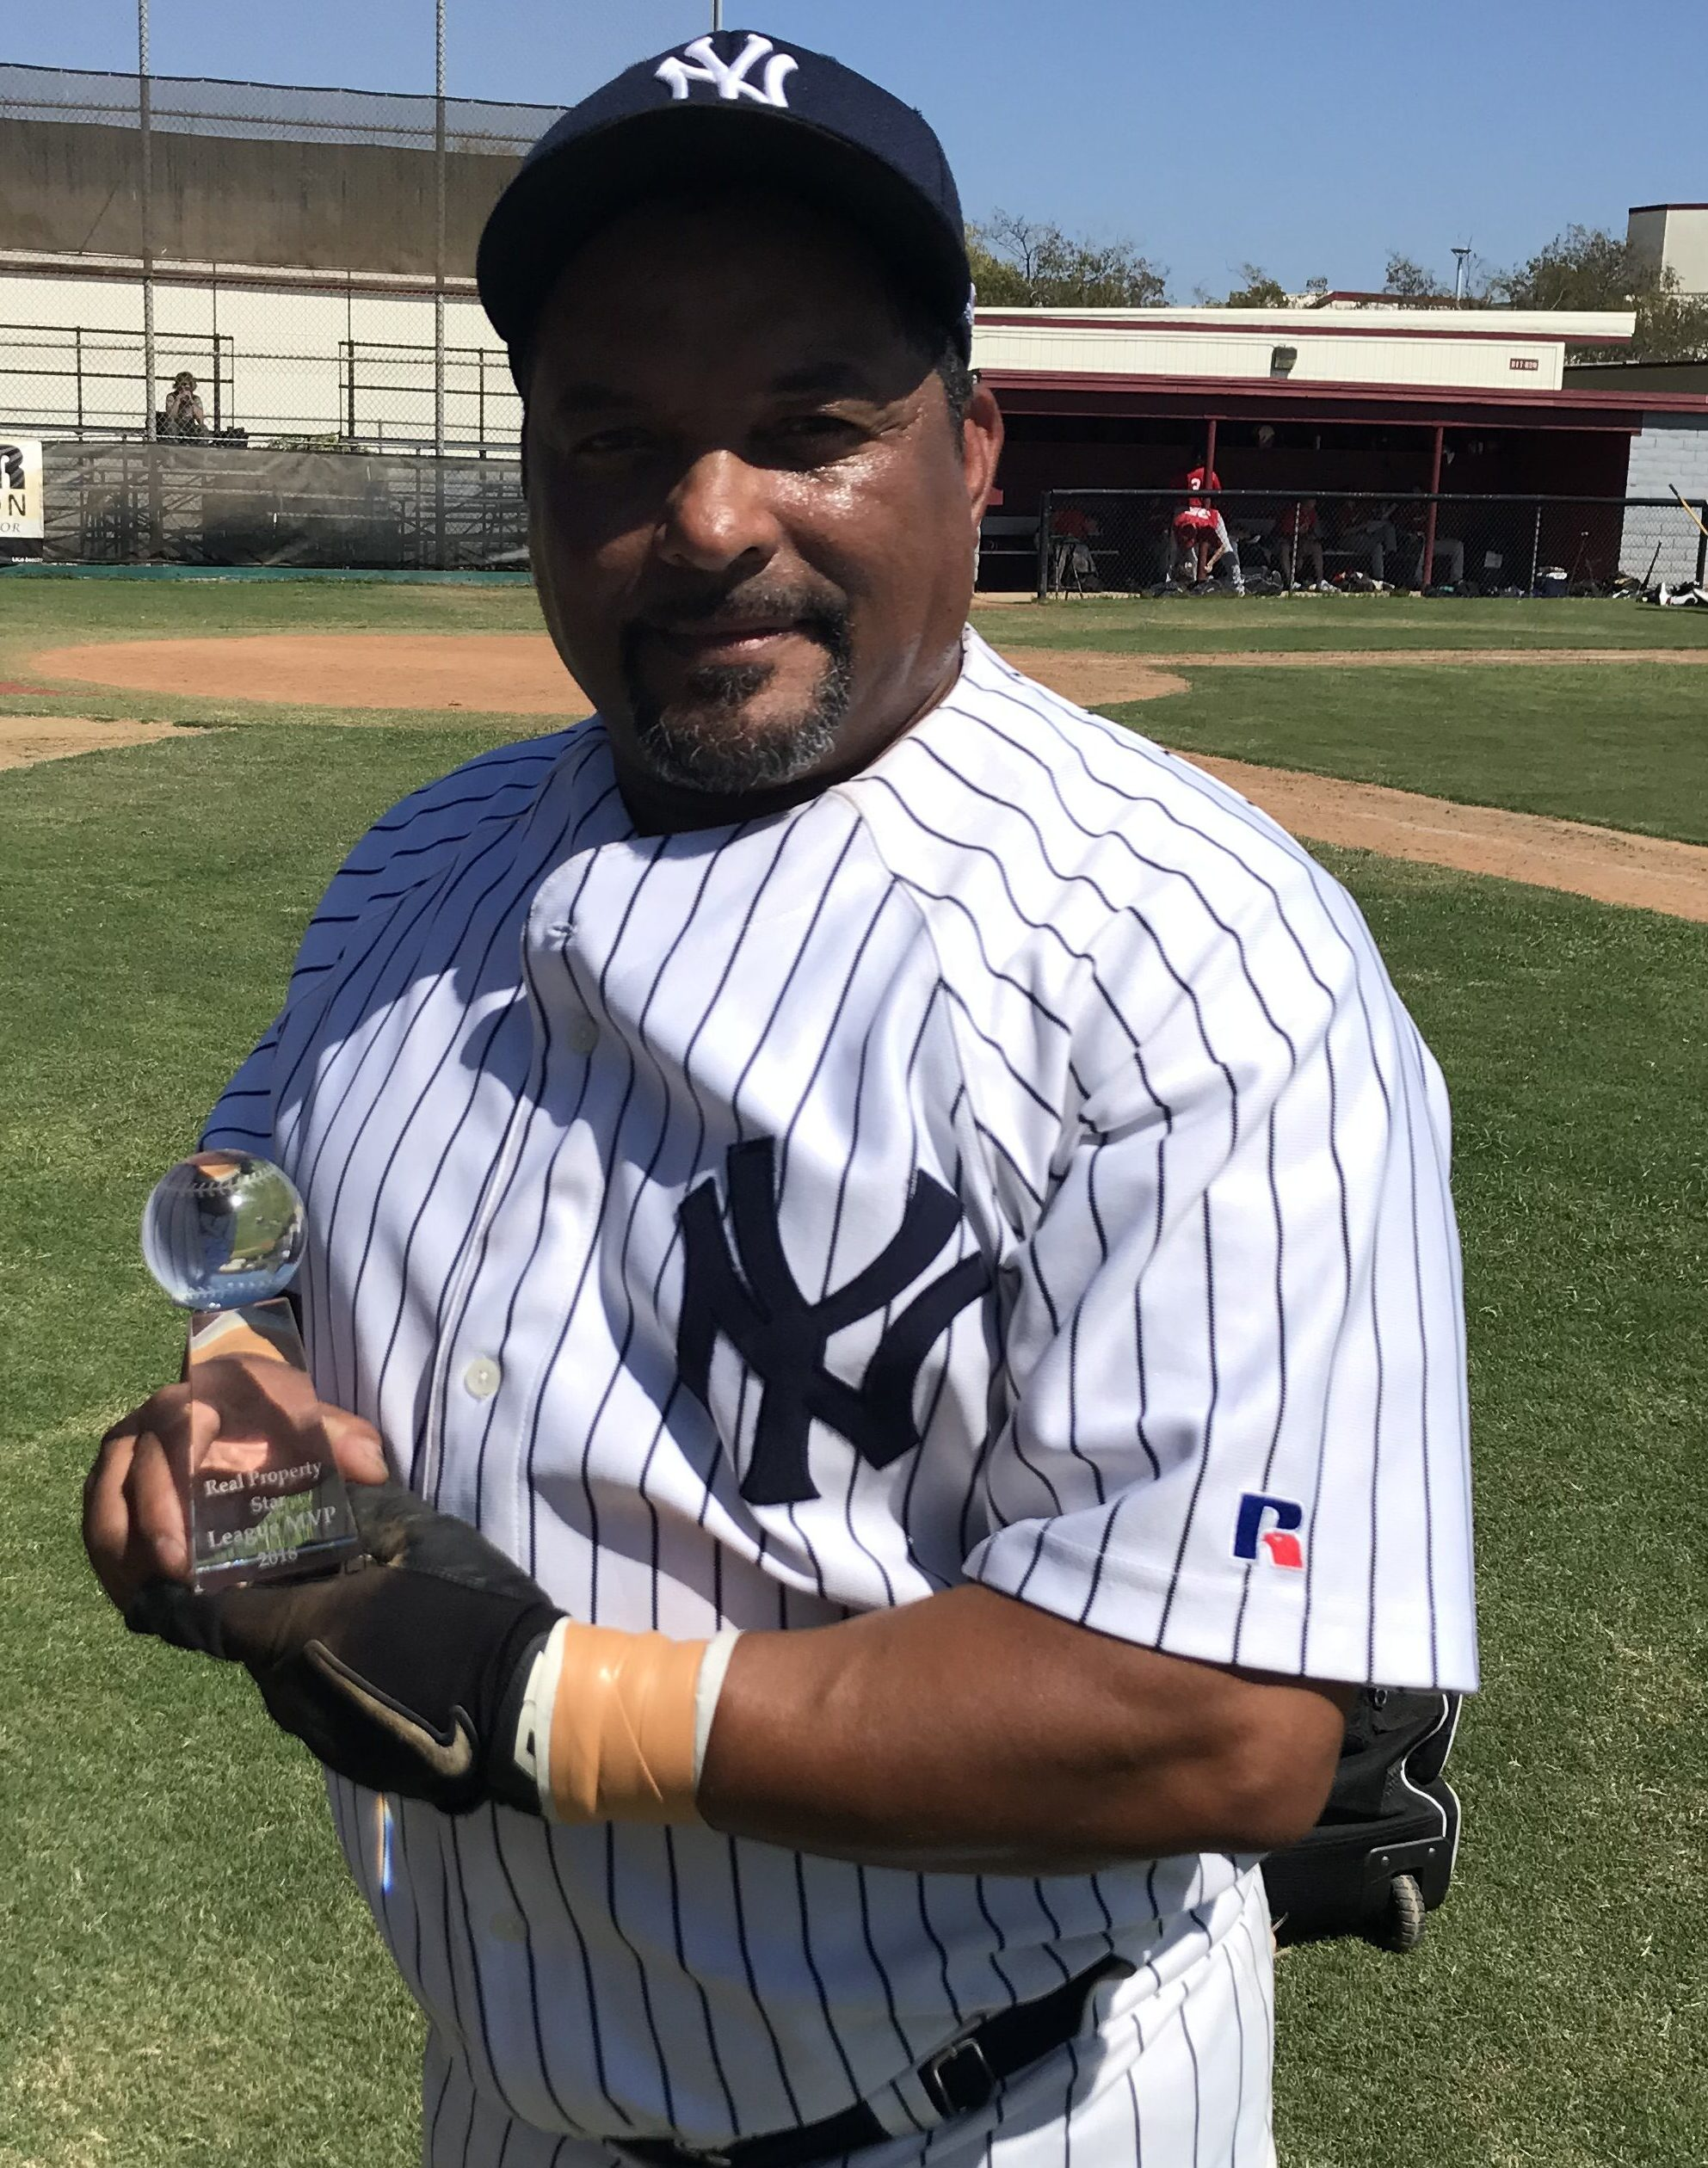 2018 REAL PROPERTY STAR MVP SUMMER MSBL 55+ AMERICAN DIVISION YANKEES Anthony Monteiro